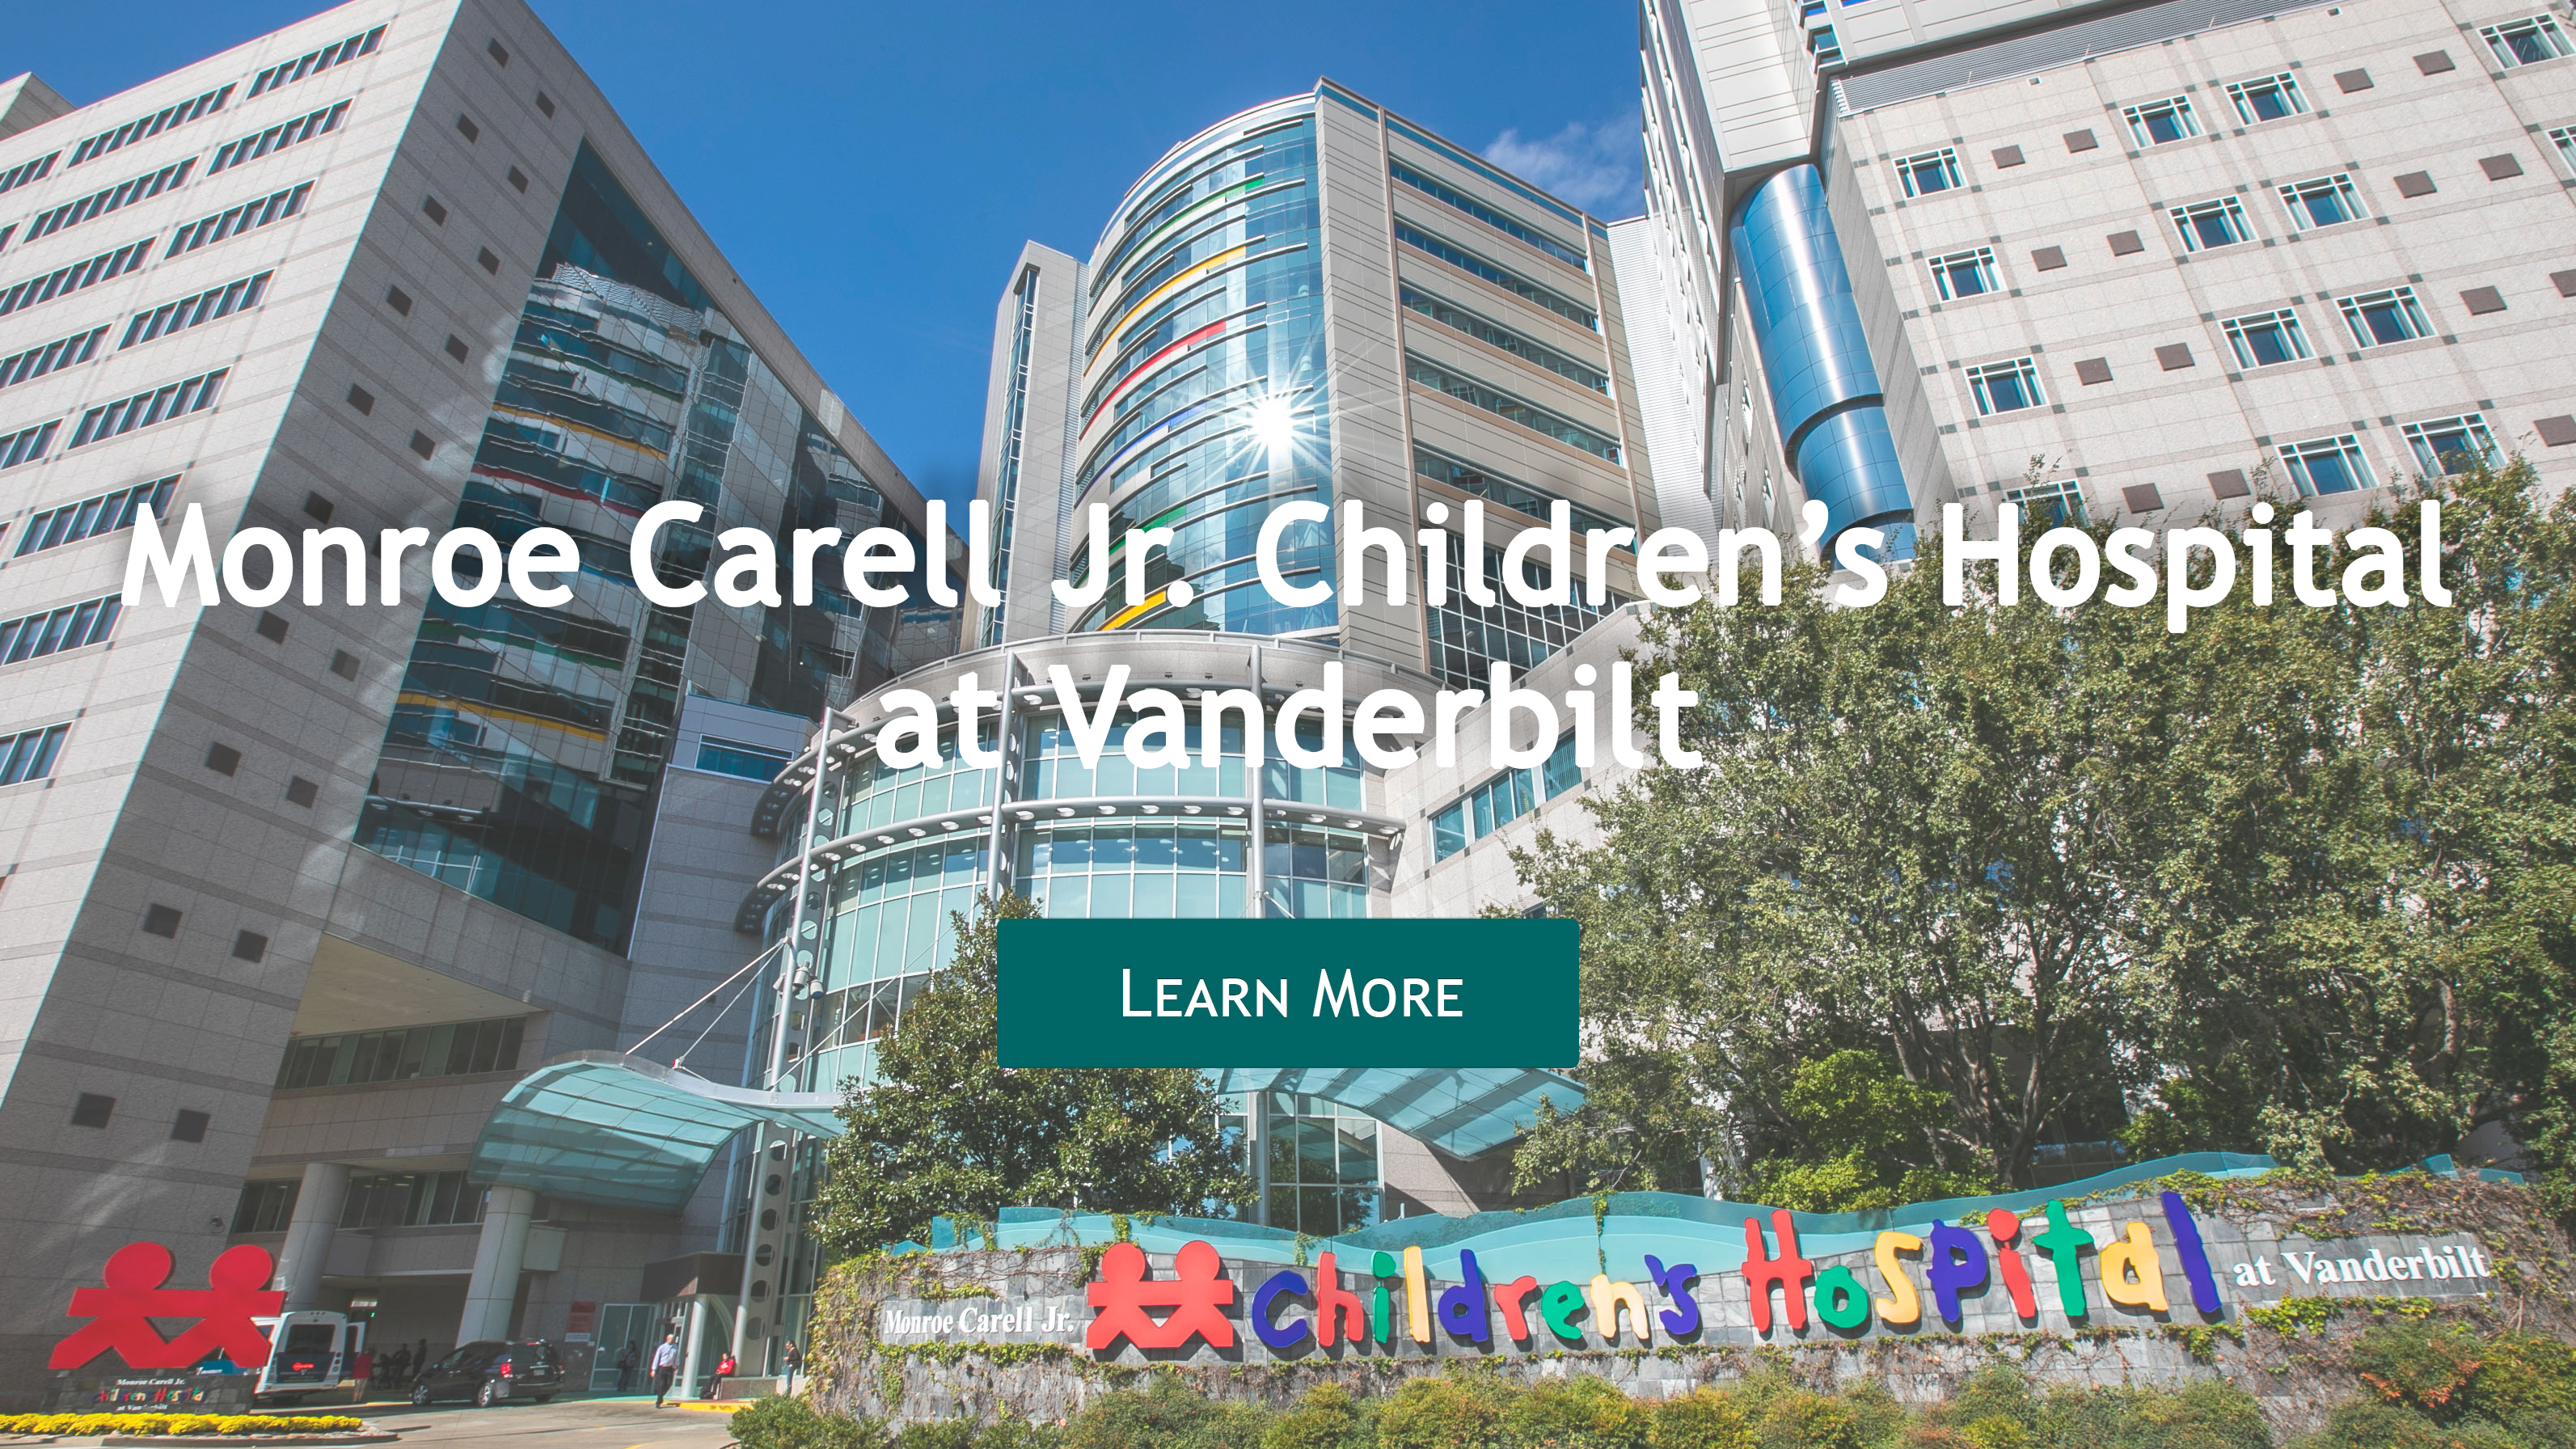 Welcome to Monroe Carell Jr. Children's Hospital at Vanderbilt. Click here to learn more.